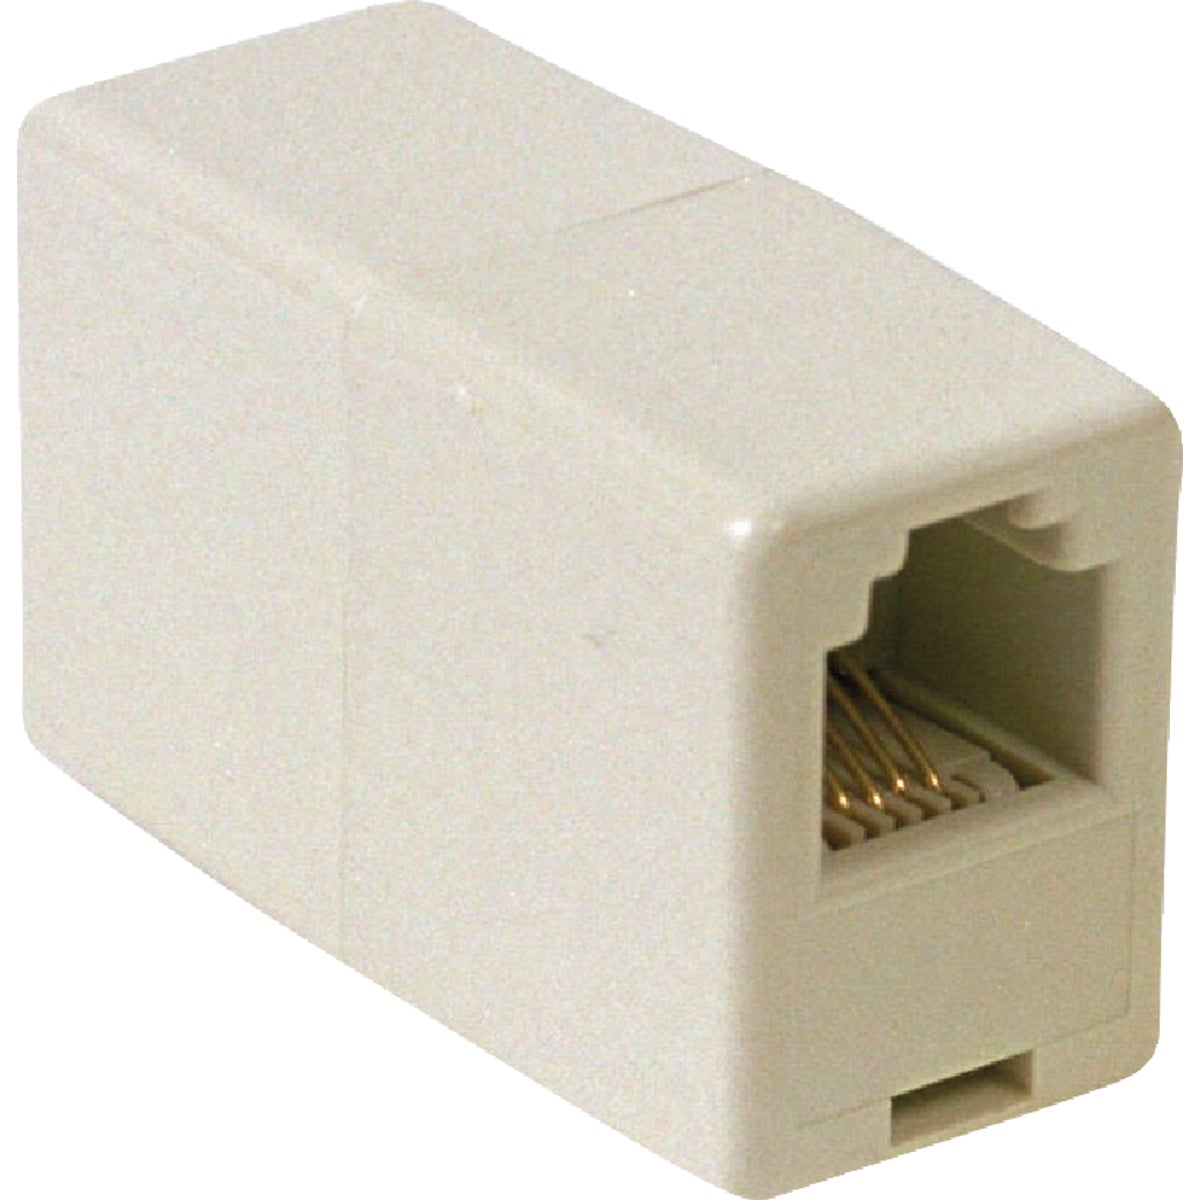 ALM INLINE CORD COUPLER